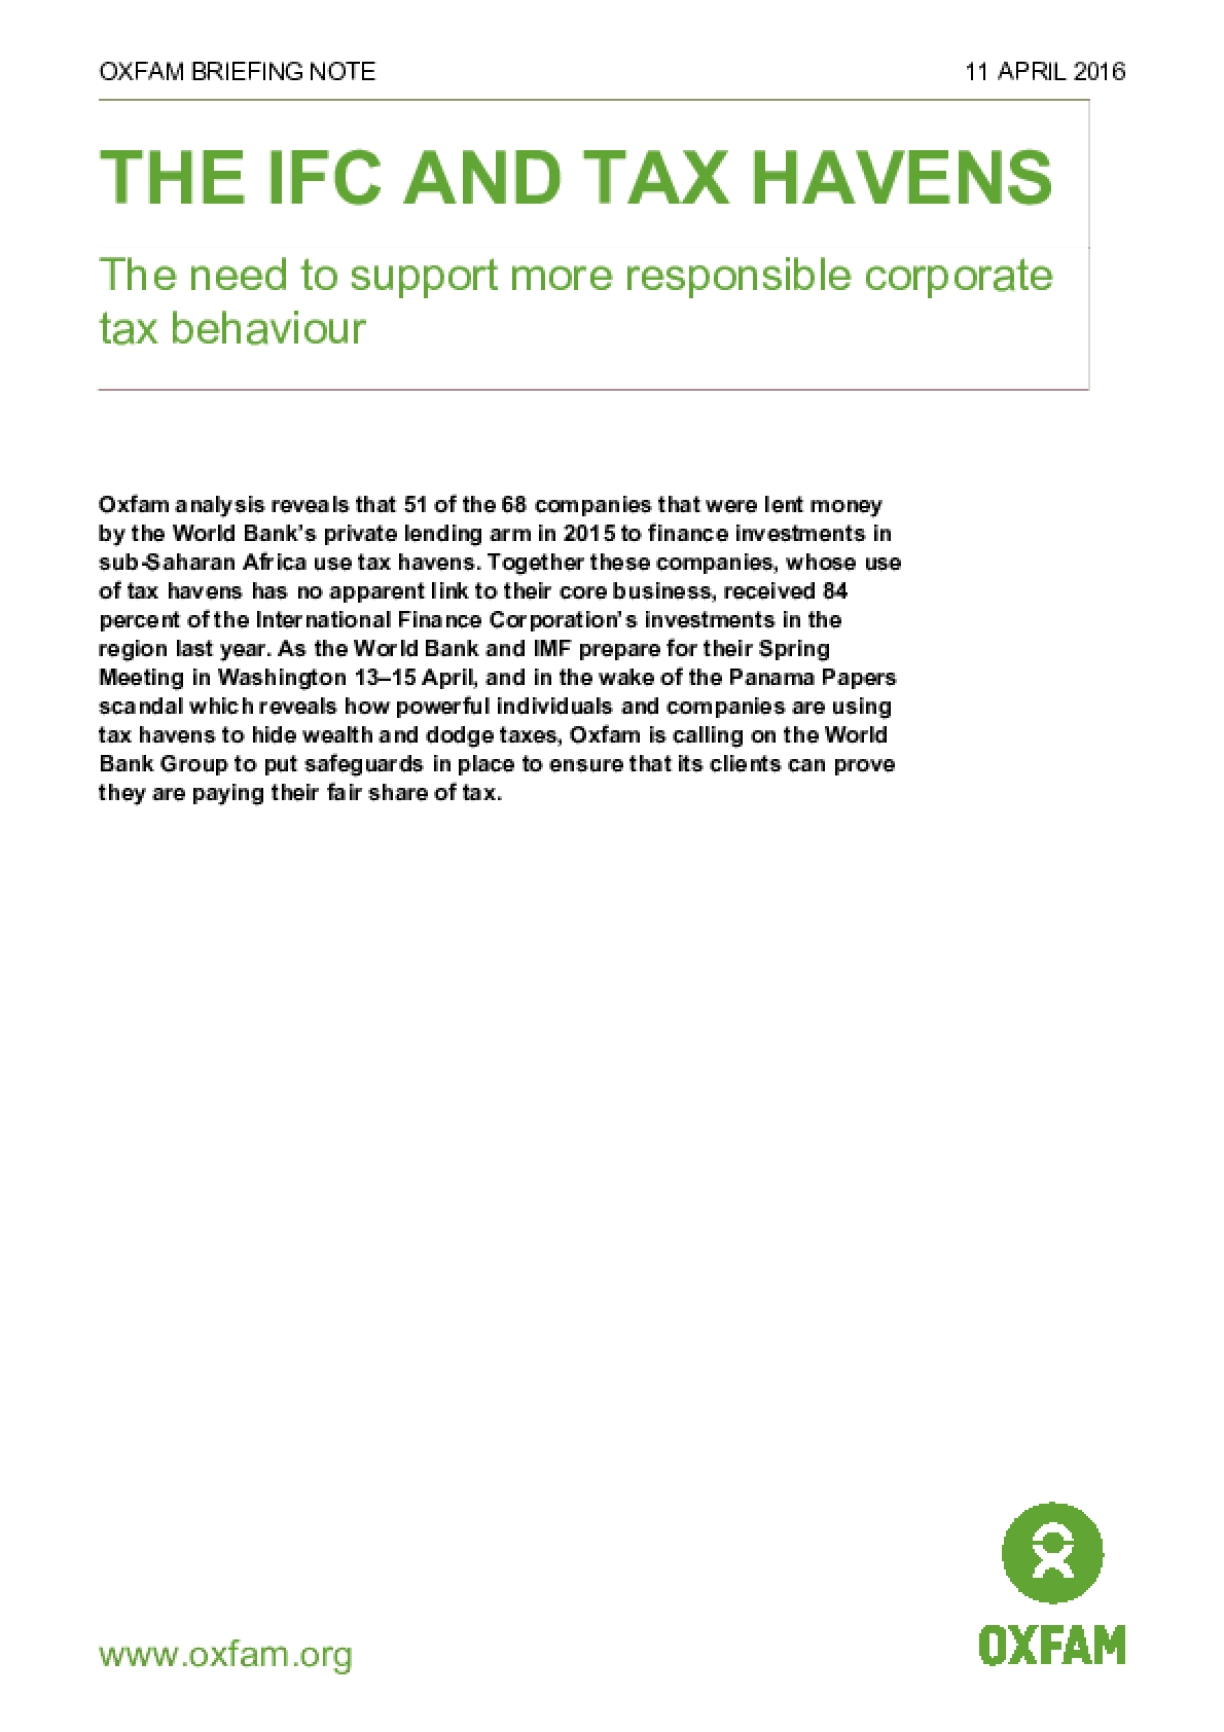 The IFC and Tax Havens: The need to support more responsible corporate tax behaviour